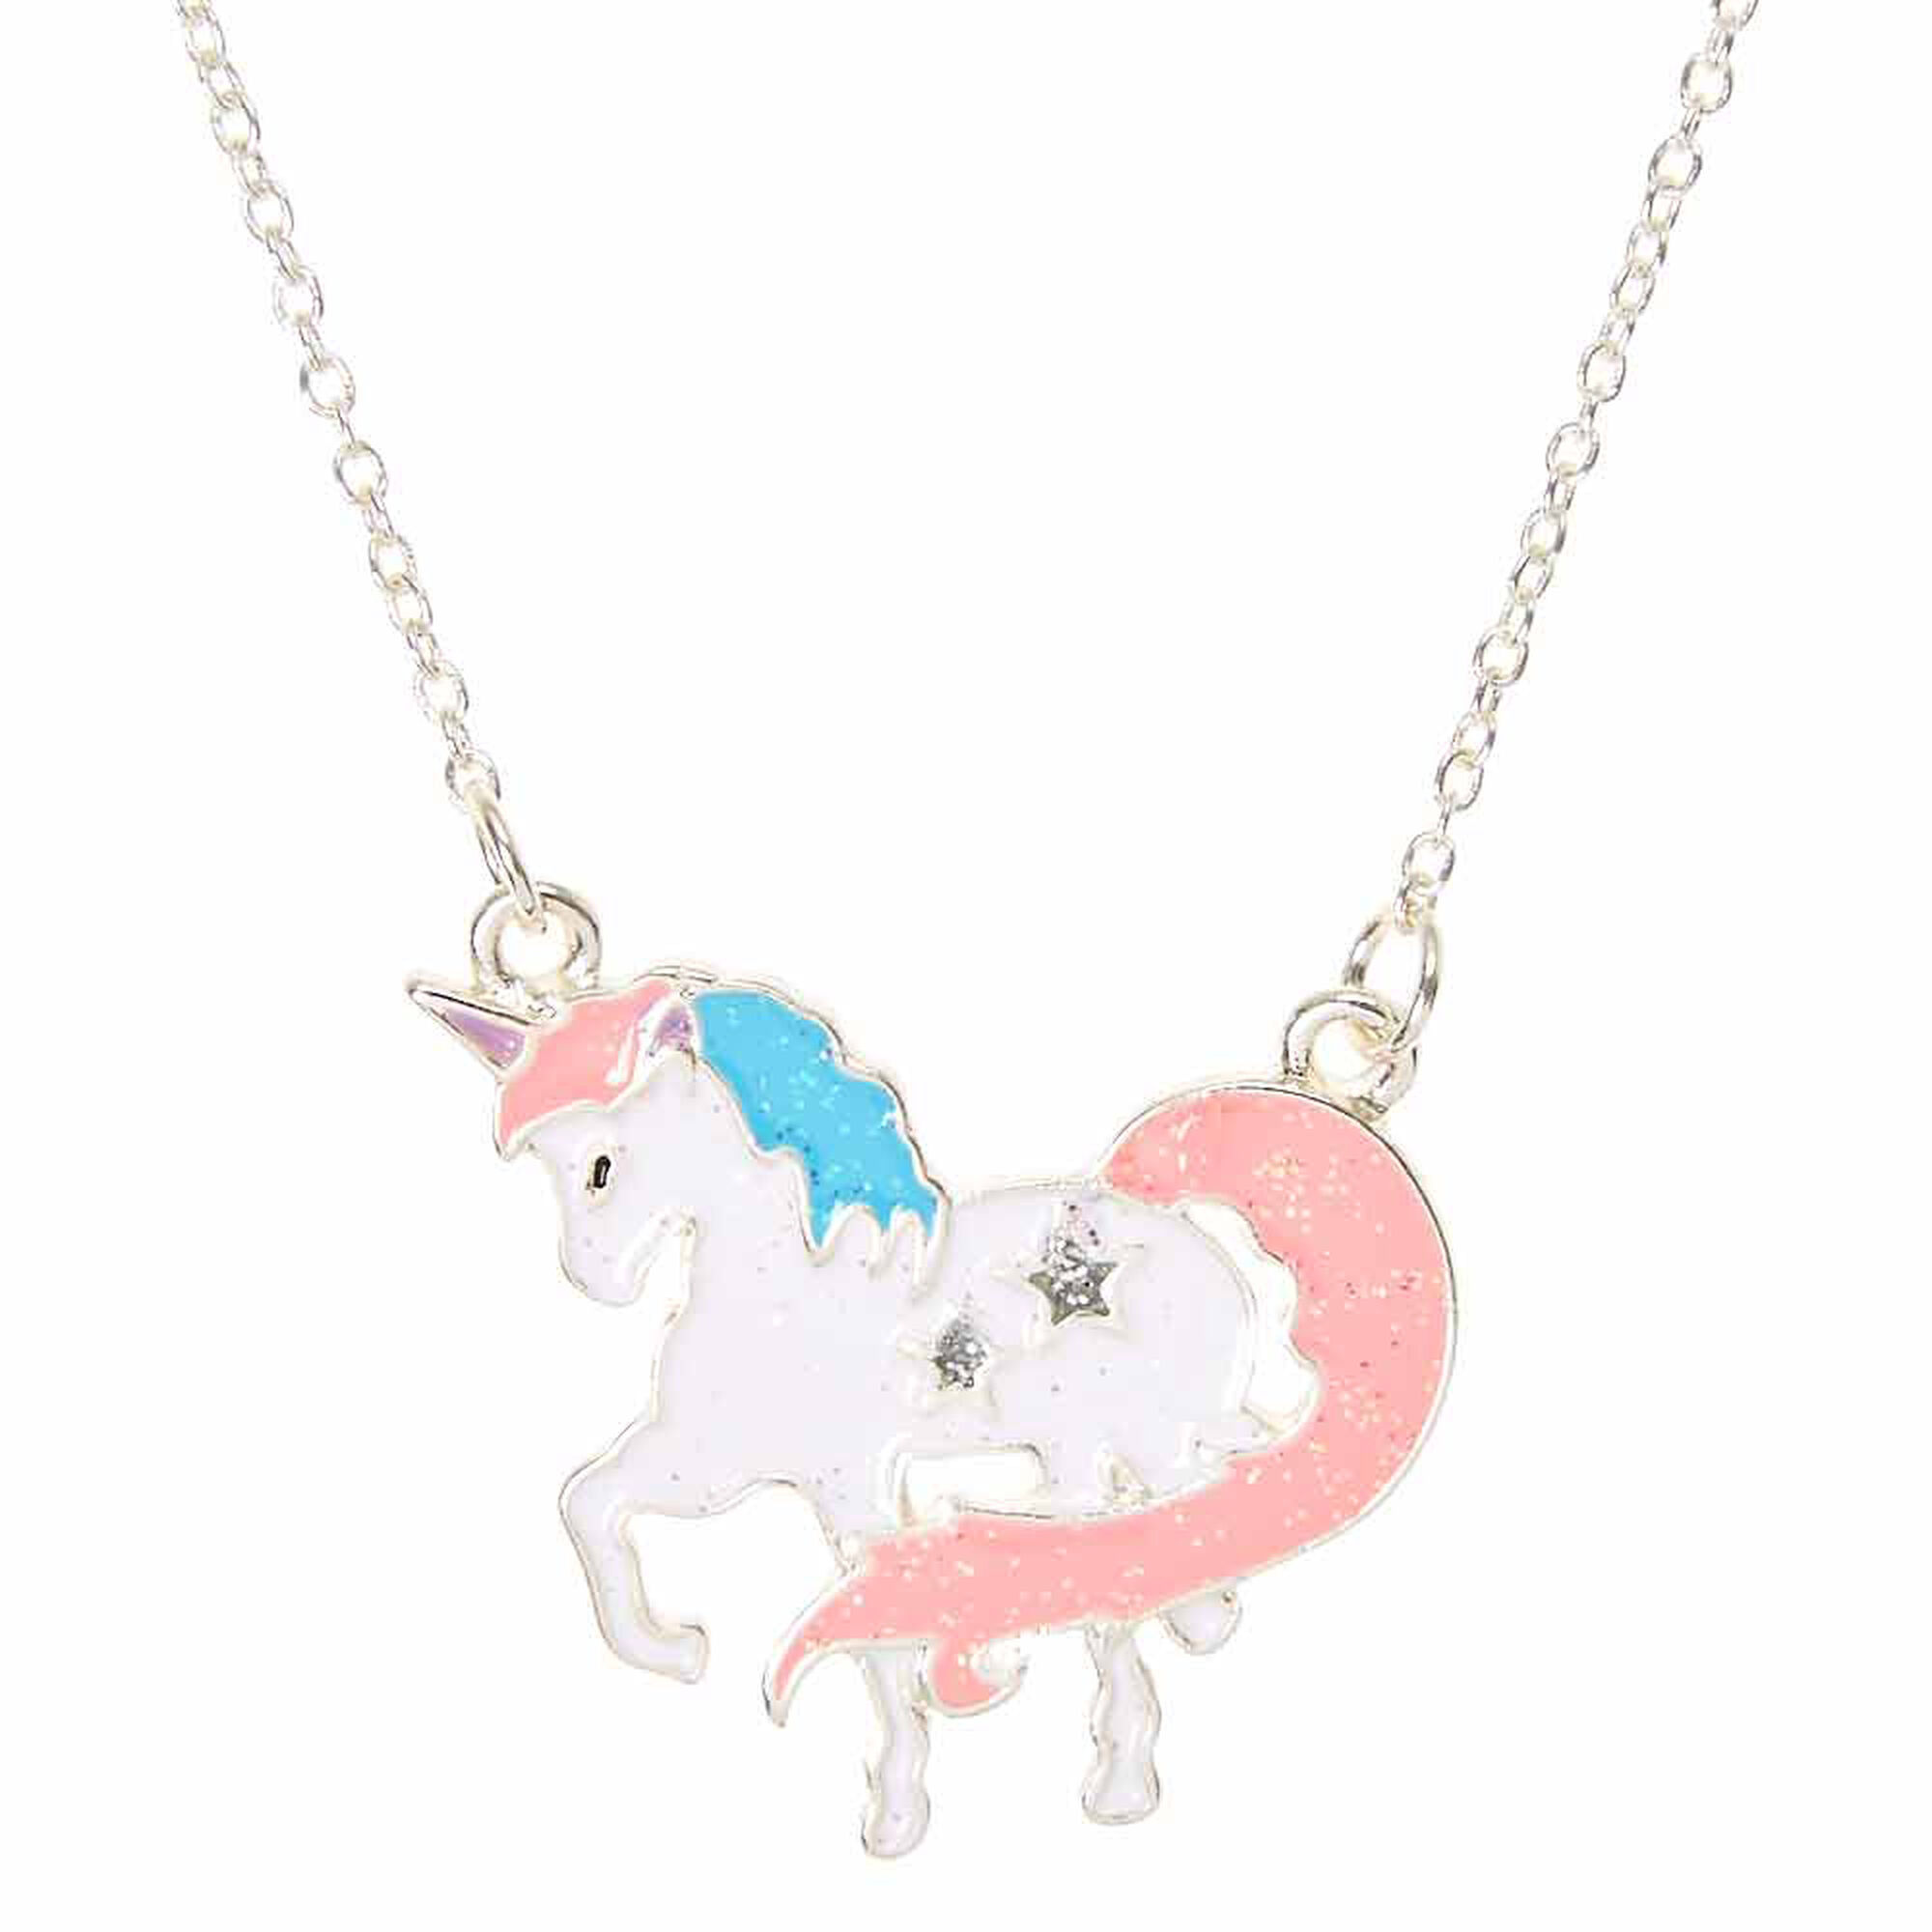 new collection bisjoux mini necklace magix mas the unicorn jewelry pendant